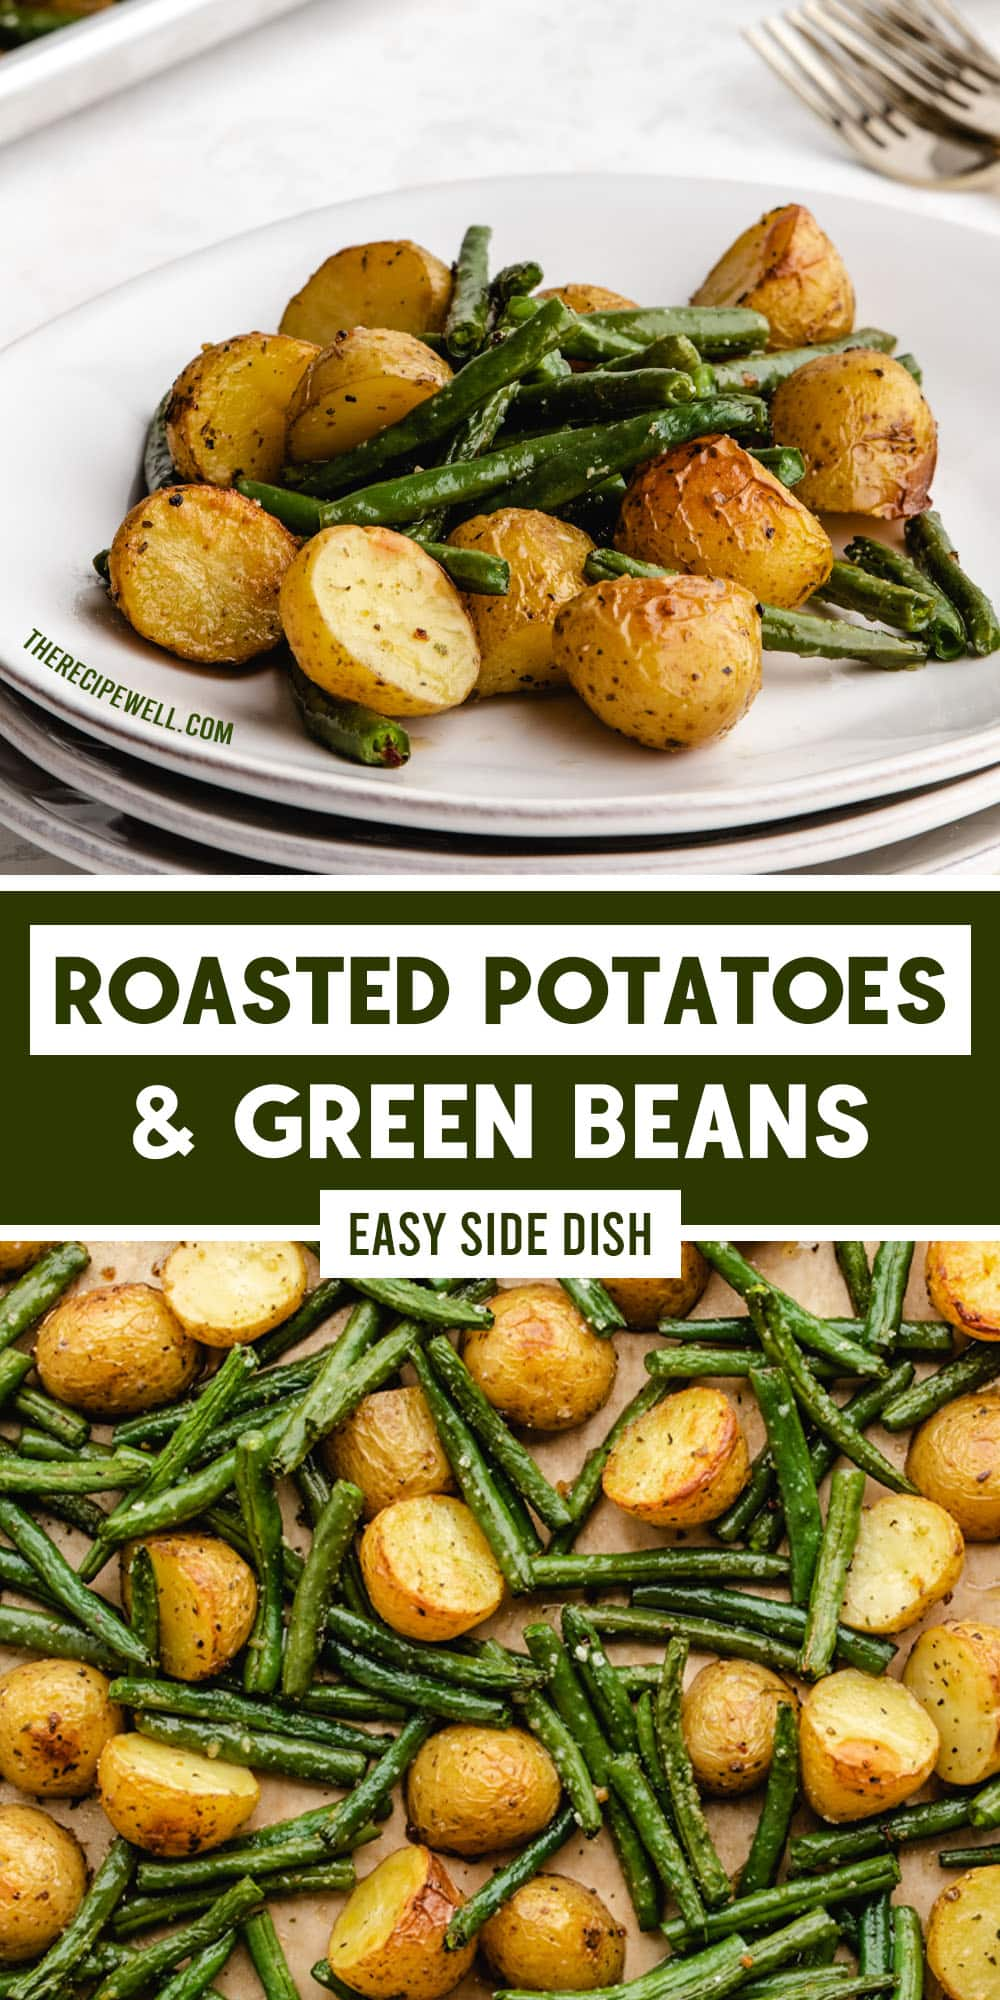 Roasted Potatoes and Green Beans are a delicious addition to any meal with chicken, beef or fish. Little prep and little cleanup! via @therecipewell